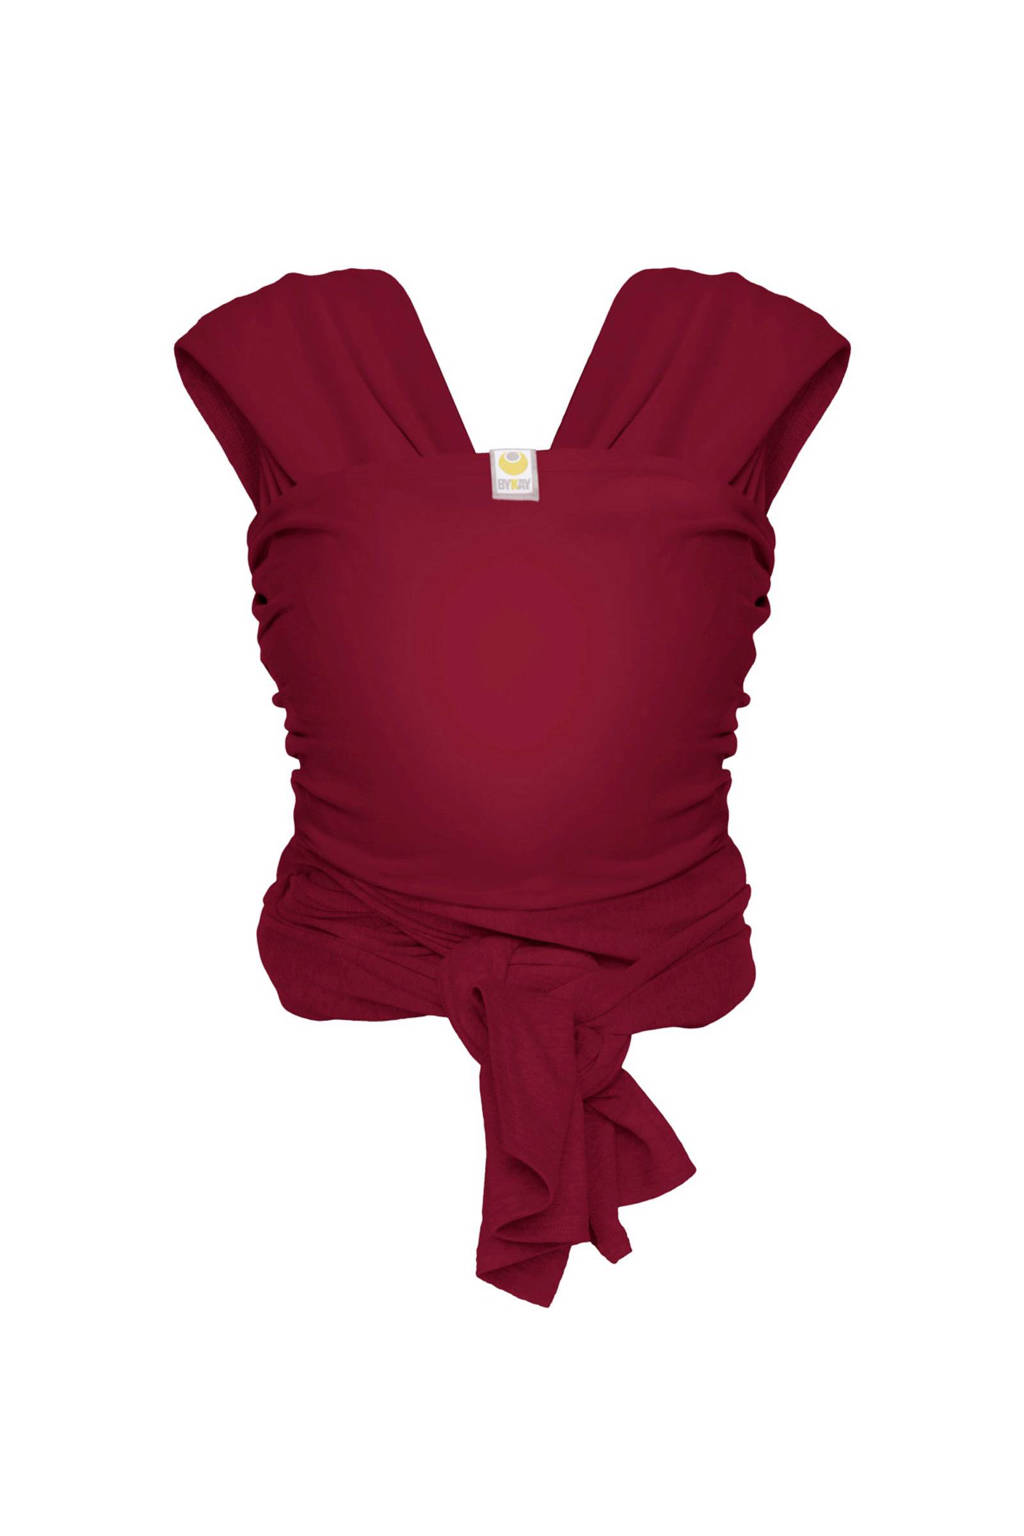 ByKay draagdoek Stretchy Wrap Deluxe 10150M rood, Berry Red